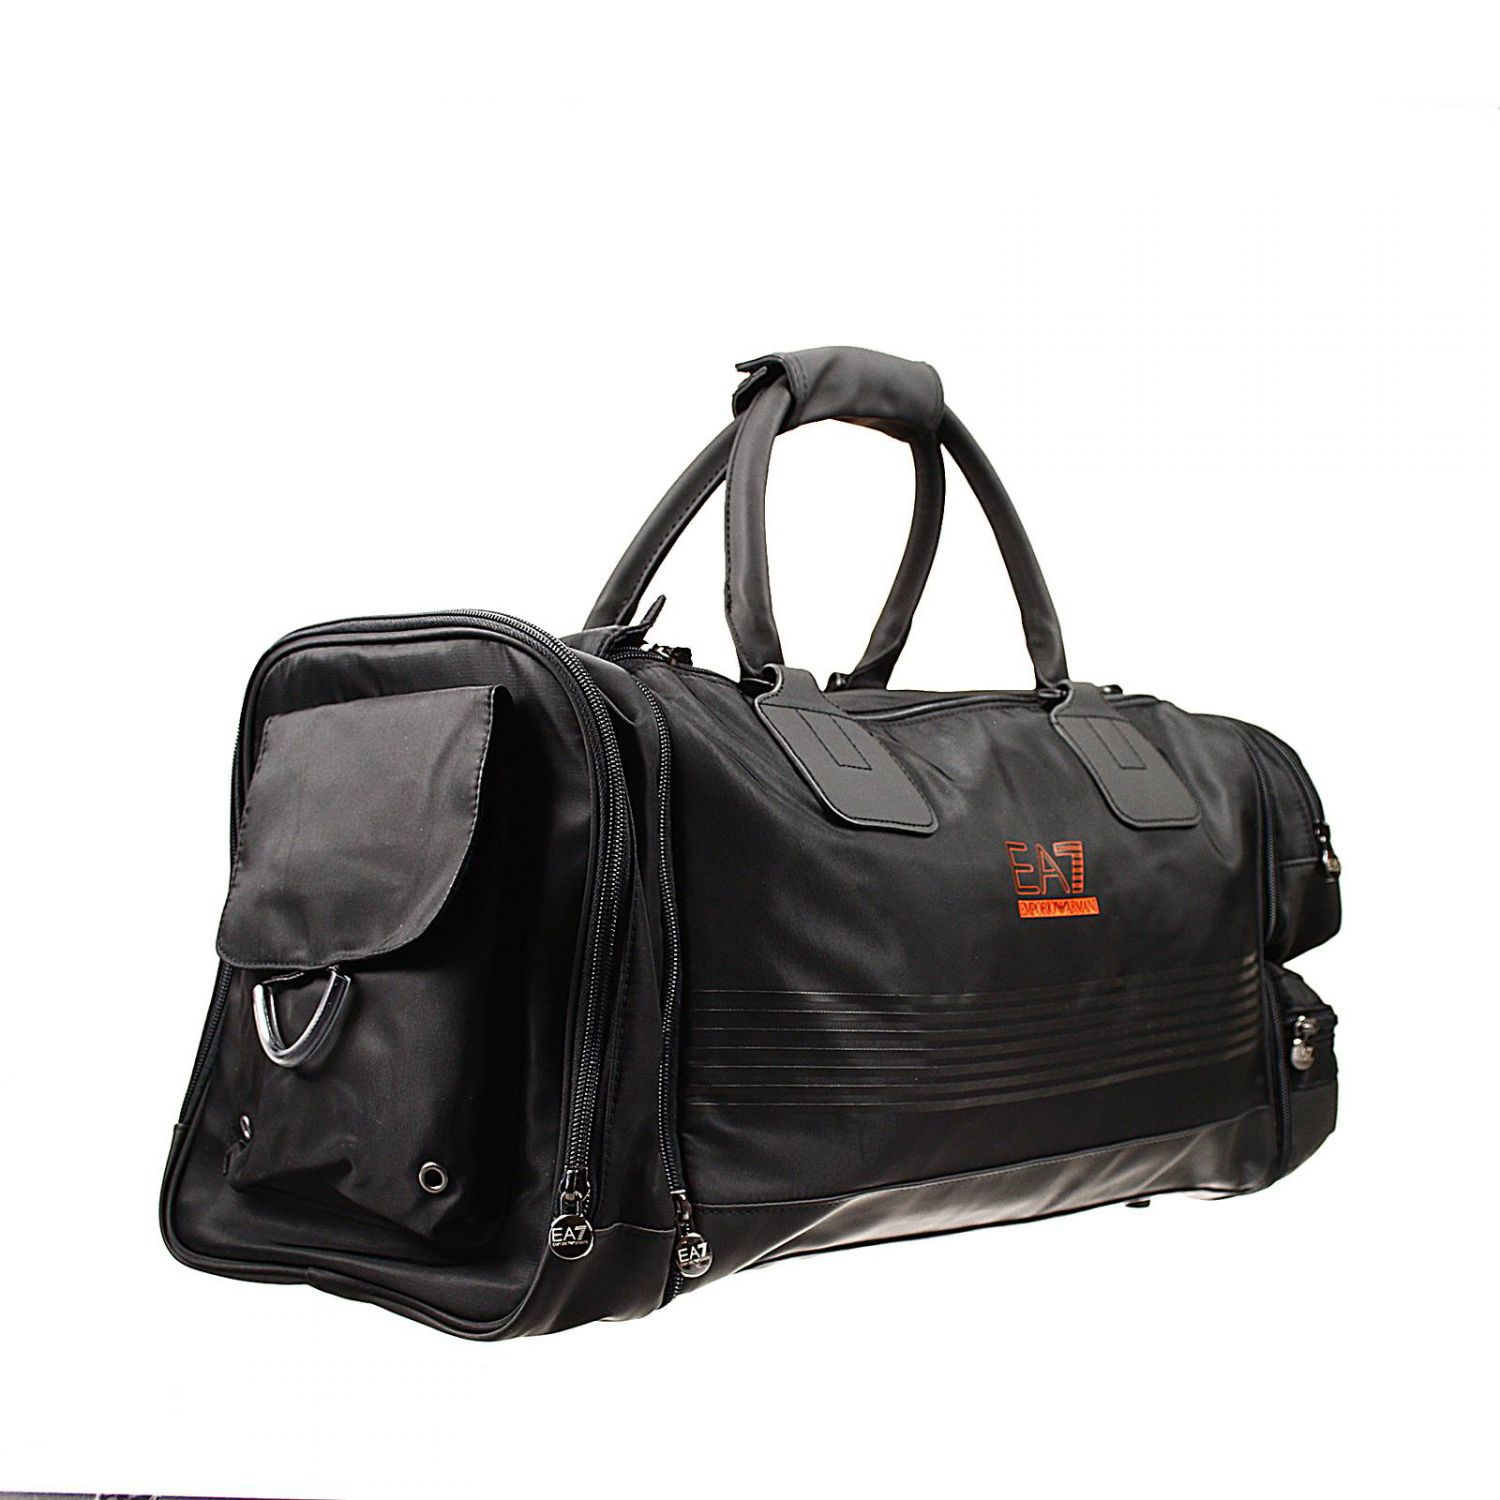 Trafalgar Travel Bag